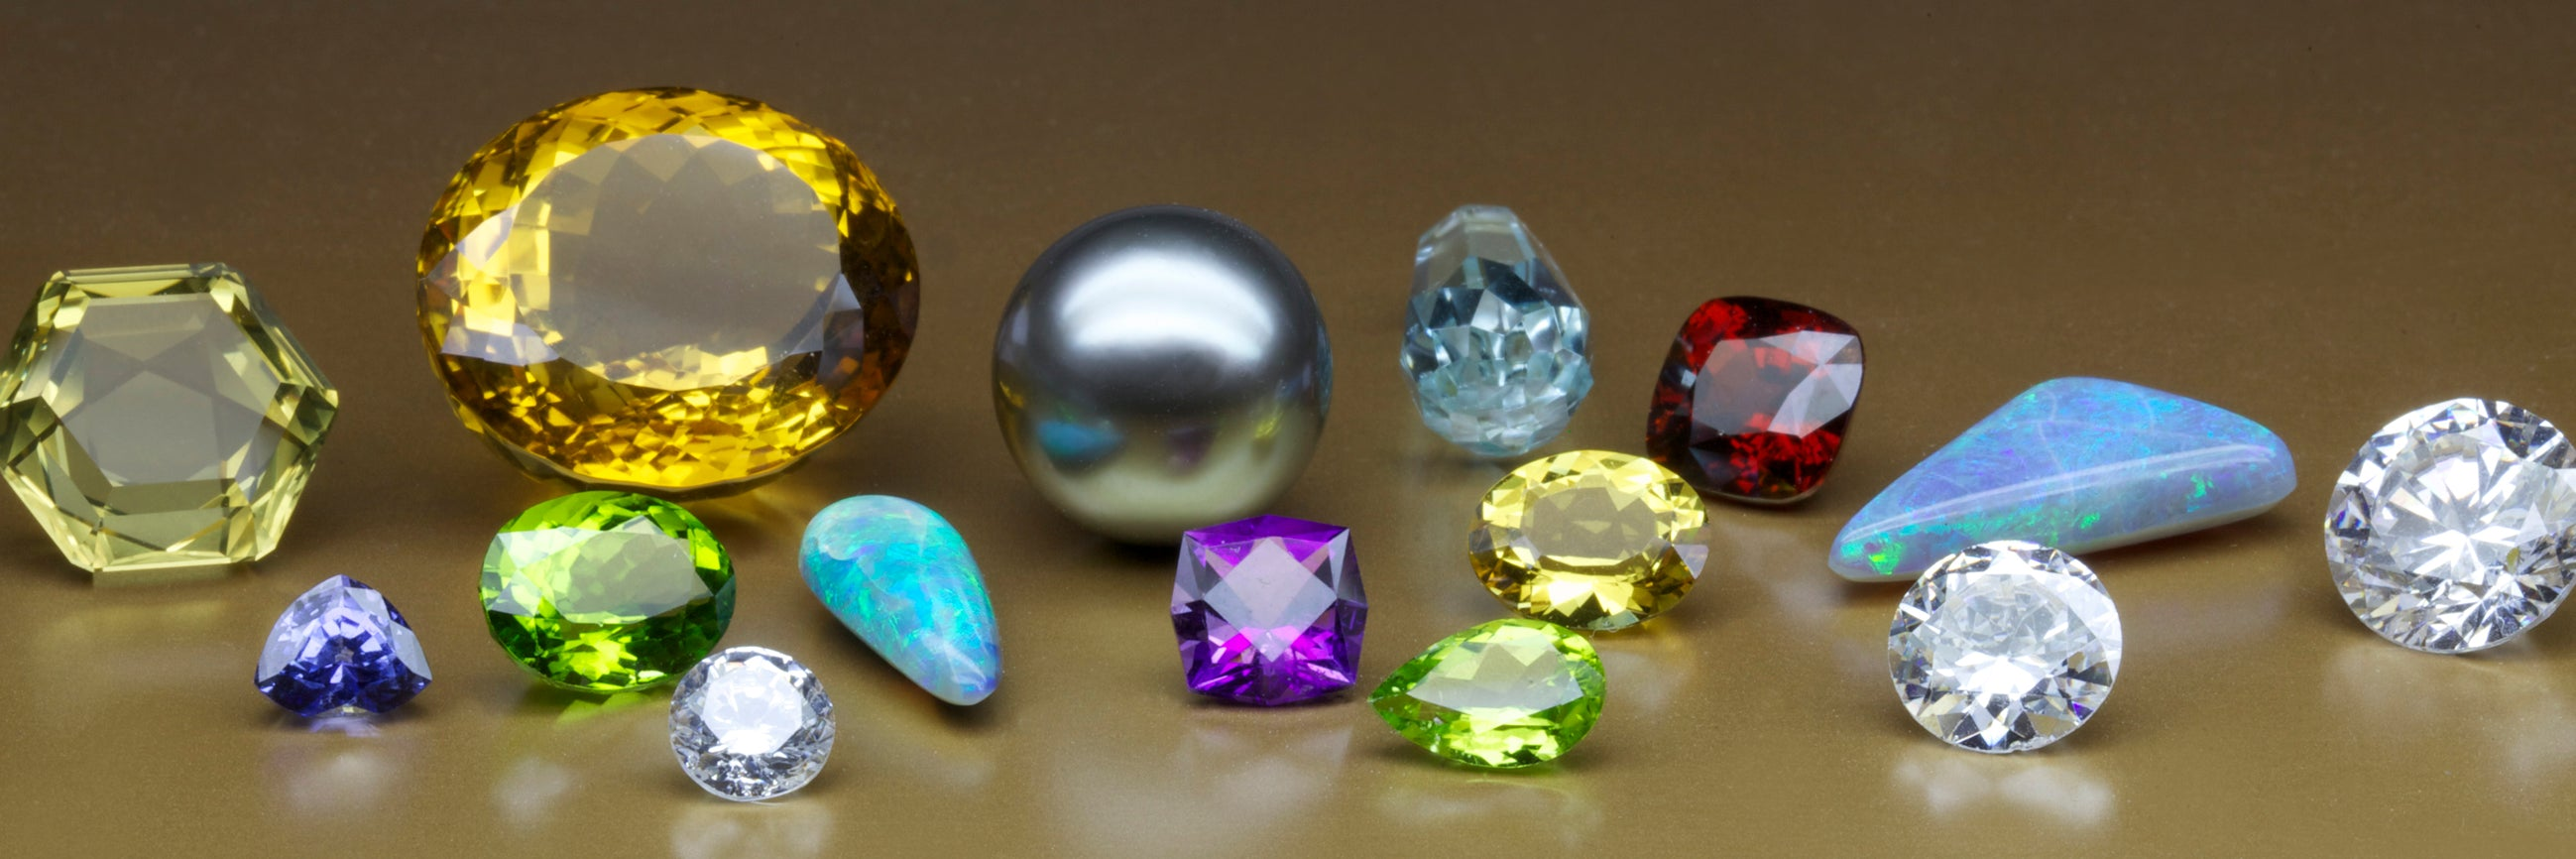 Gems and diamonds